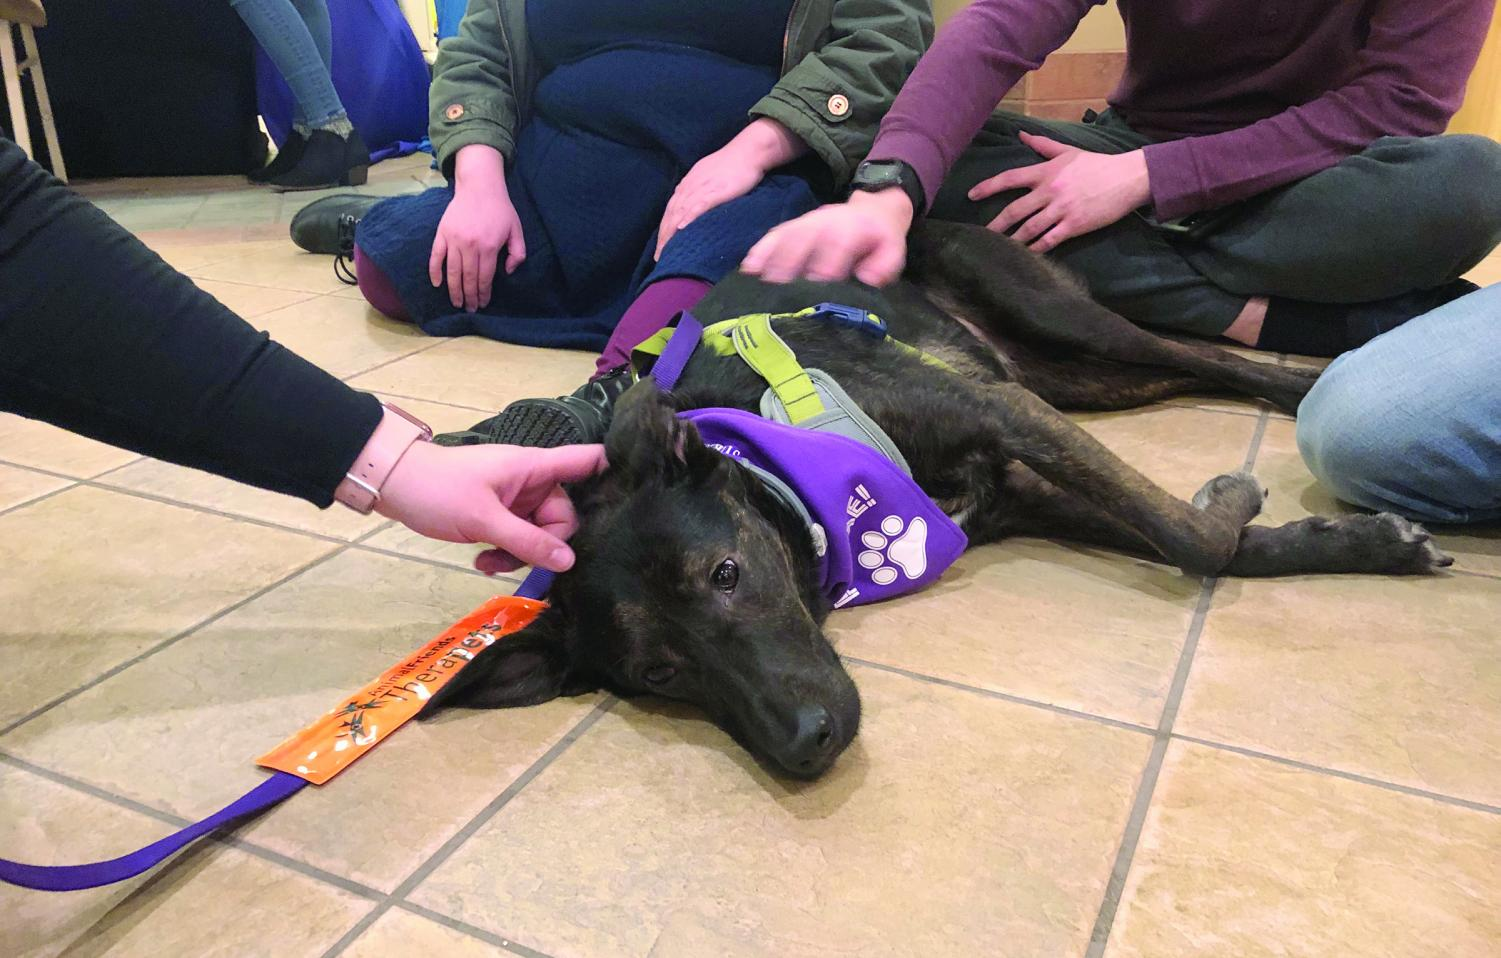 Arya, a 3-year-old therapy dog from Therapets, came to visit students during the CAB sponsered Hound Hangout on Tuesday, Feb. 19. Therapets is a program through Humane Animal Rescue where dogs and their handlers learn how to bring a relaxing environment as a form of therapy for others.